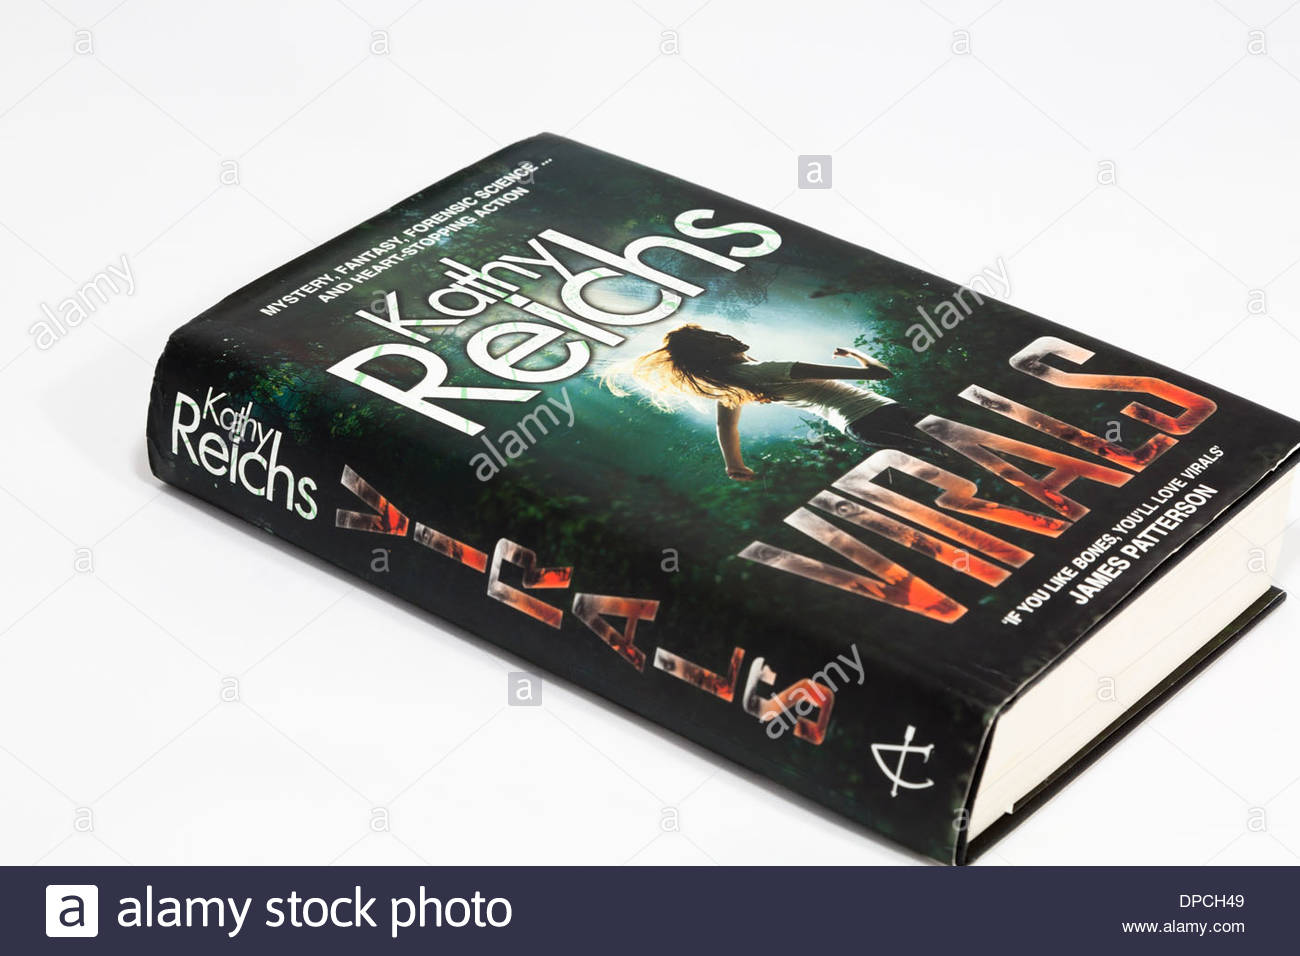 The book Virals by bestselling author Kathy Reichs on white background - Stock Image